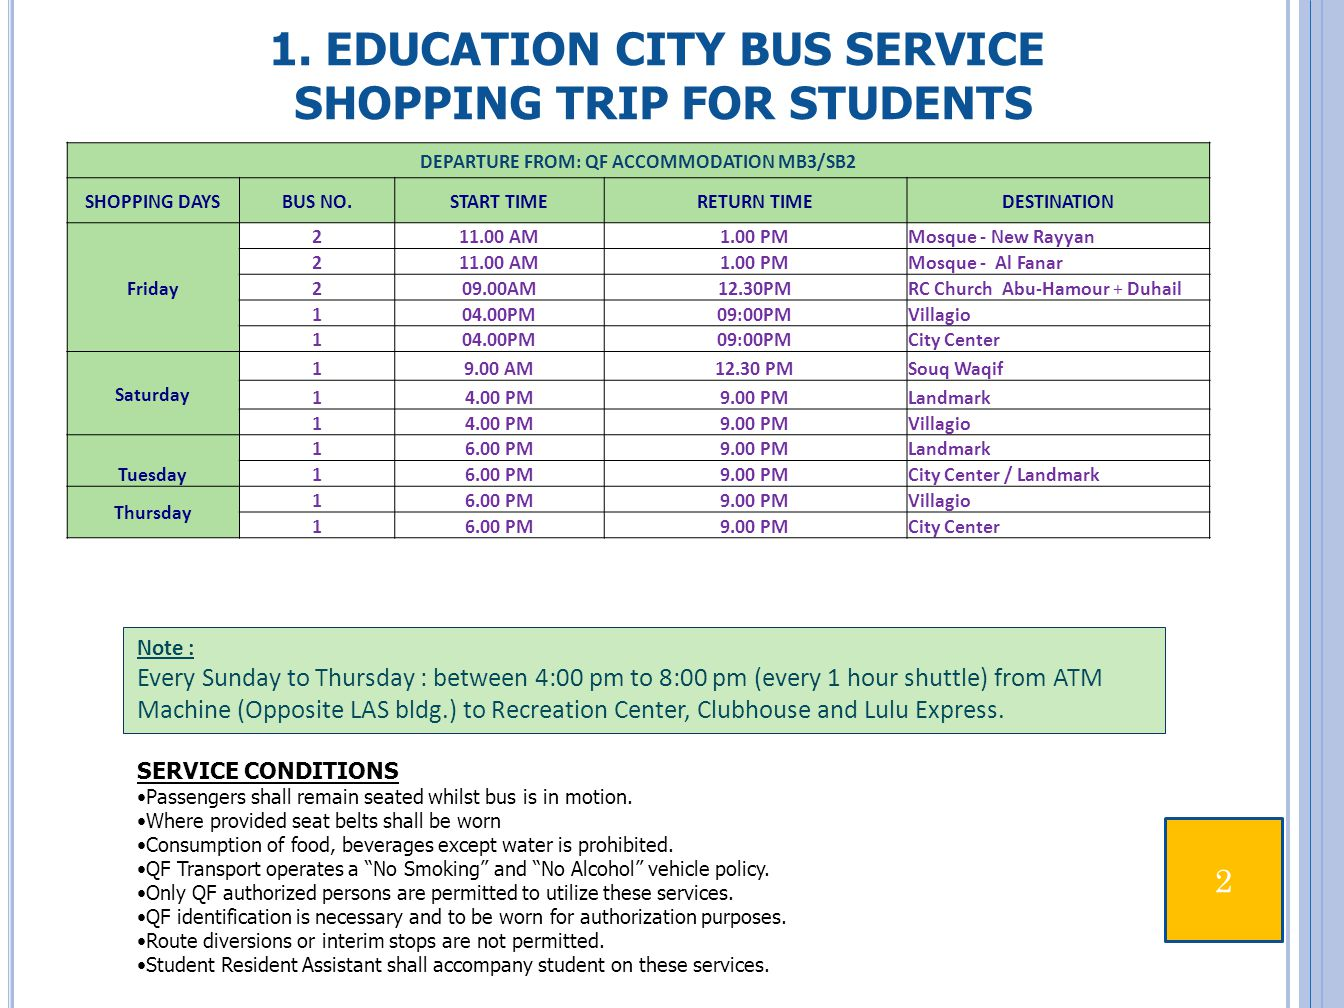 1. EDUCATION CITY BUS SERVICE SHOPPING TRIP FOR STUDENTS SERVICE CONDITIONS Passengers shall remain seated whilst bus is in motion. Where provided sea